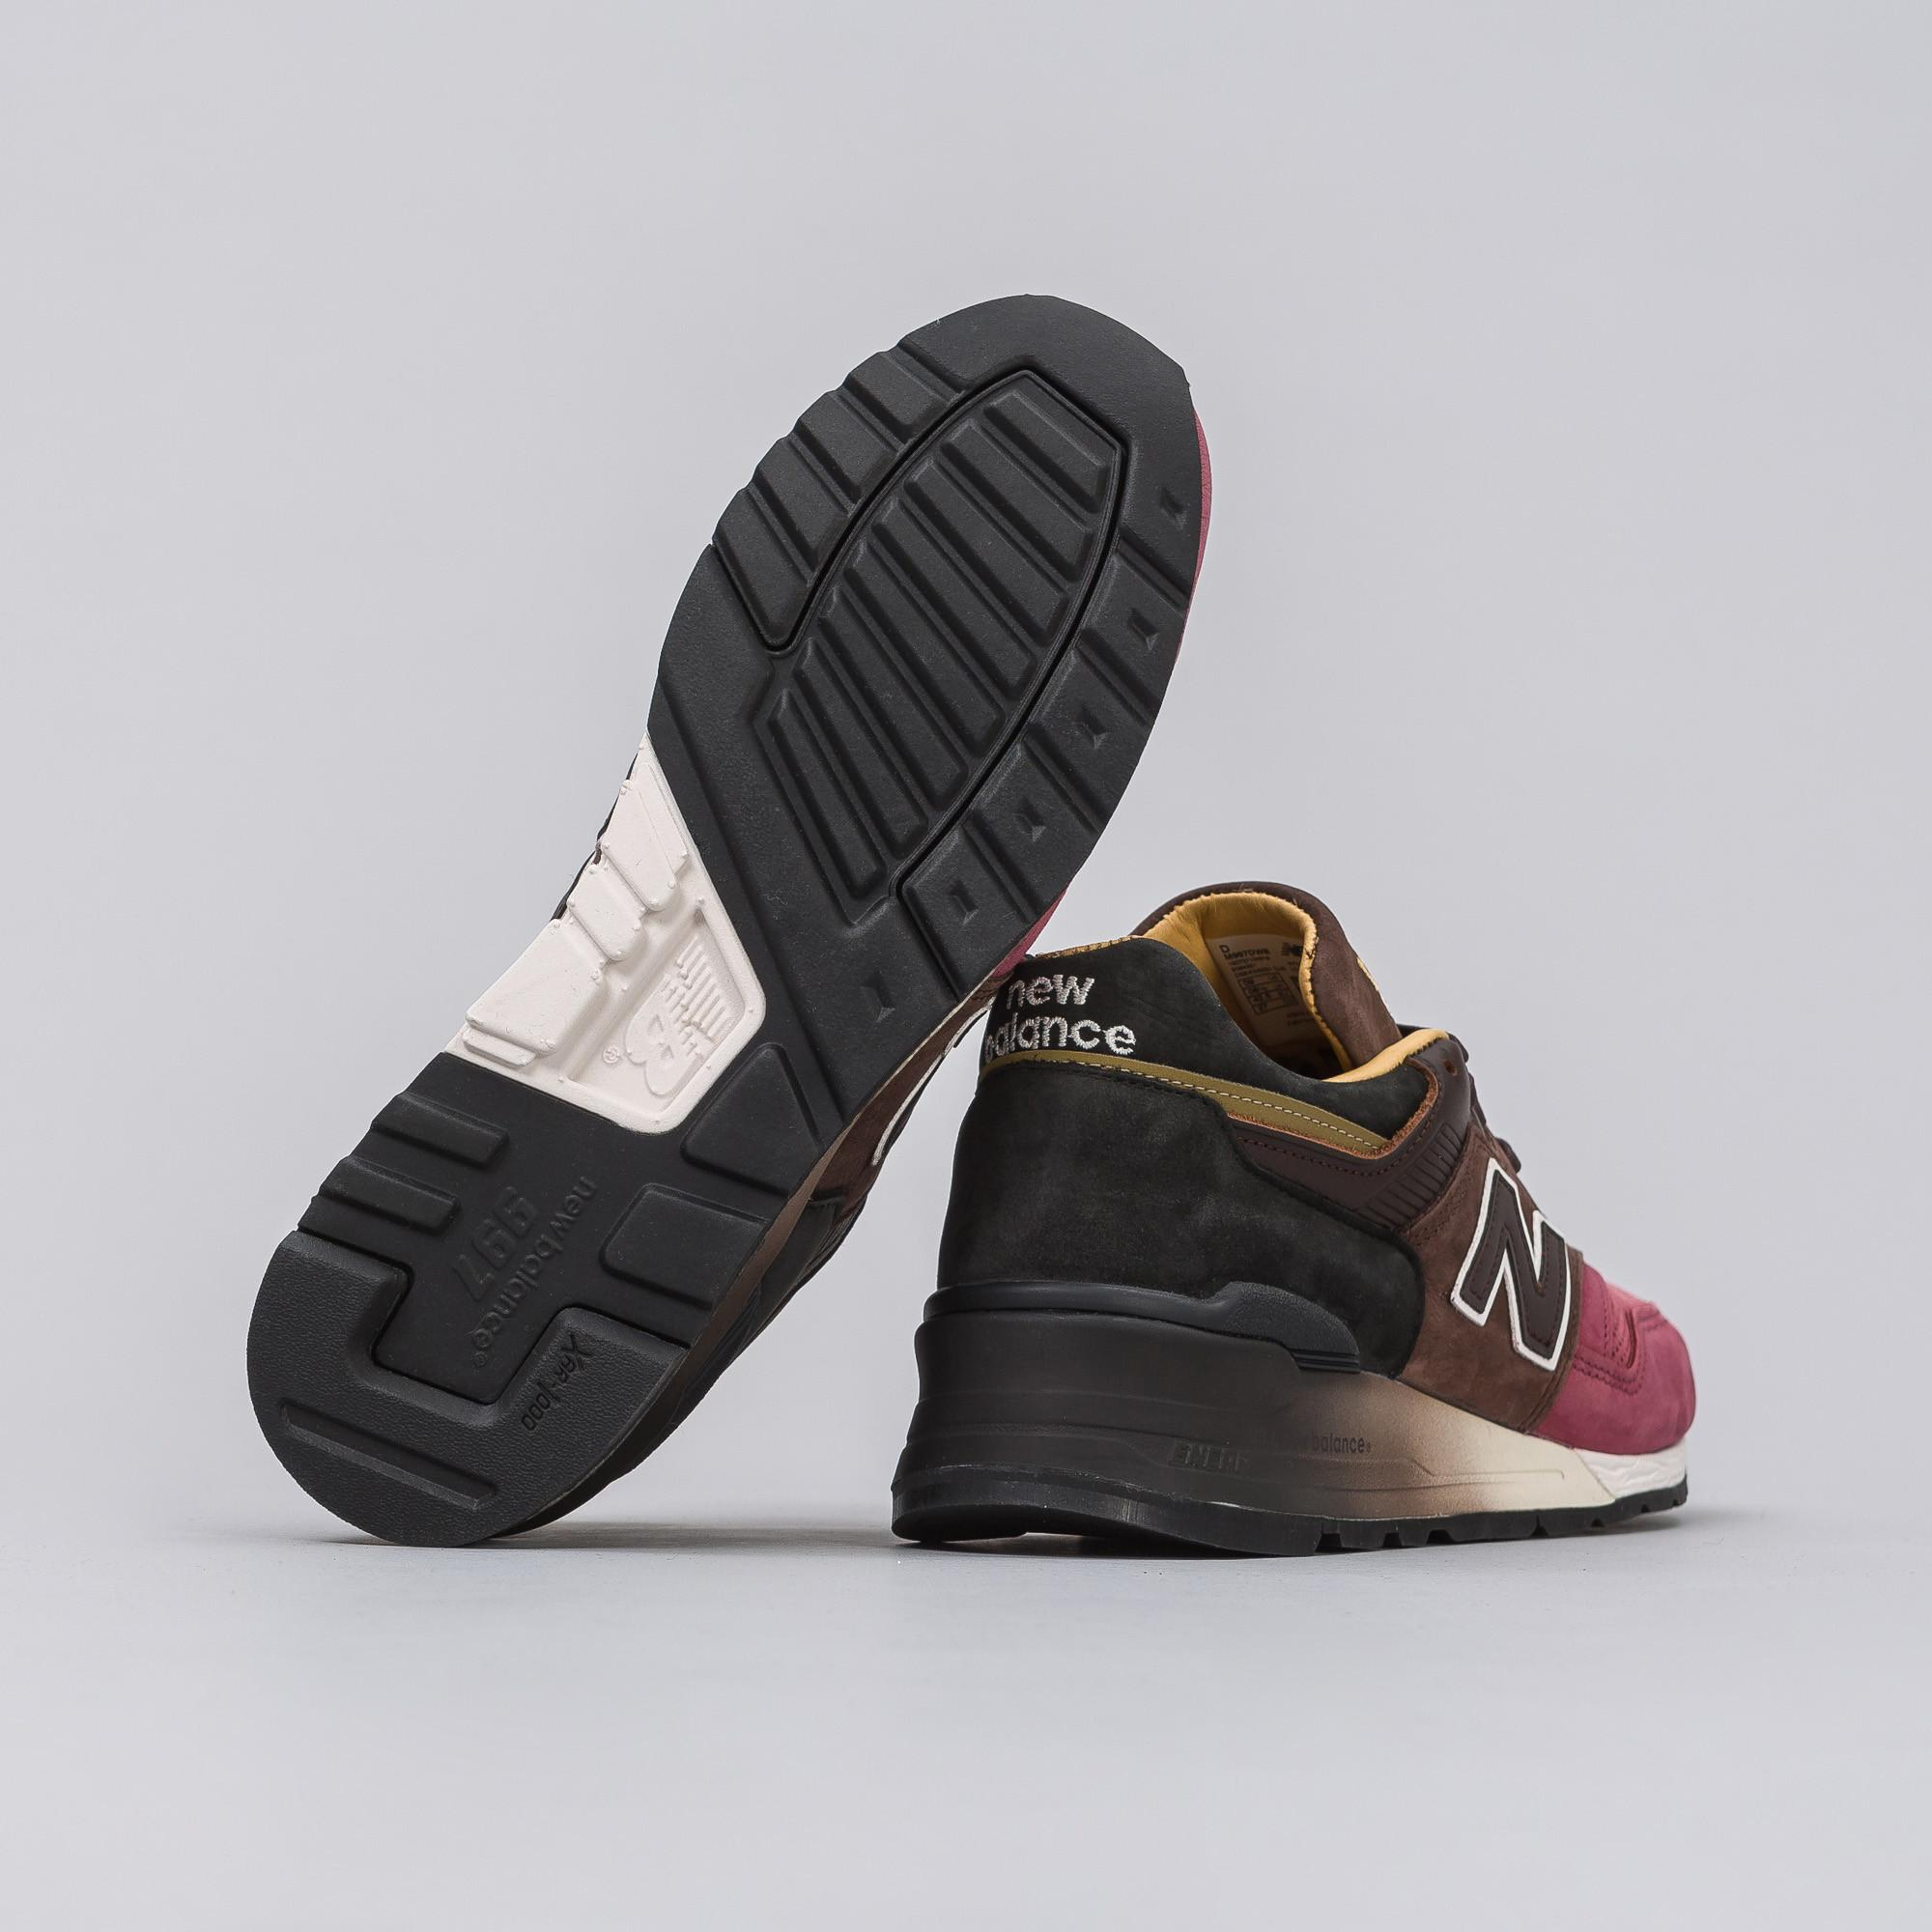 093cc0d6a4a17 New Balance M997dwb In Black/brown/radish in Brown for Men - Lyst